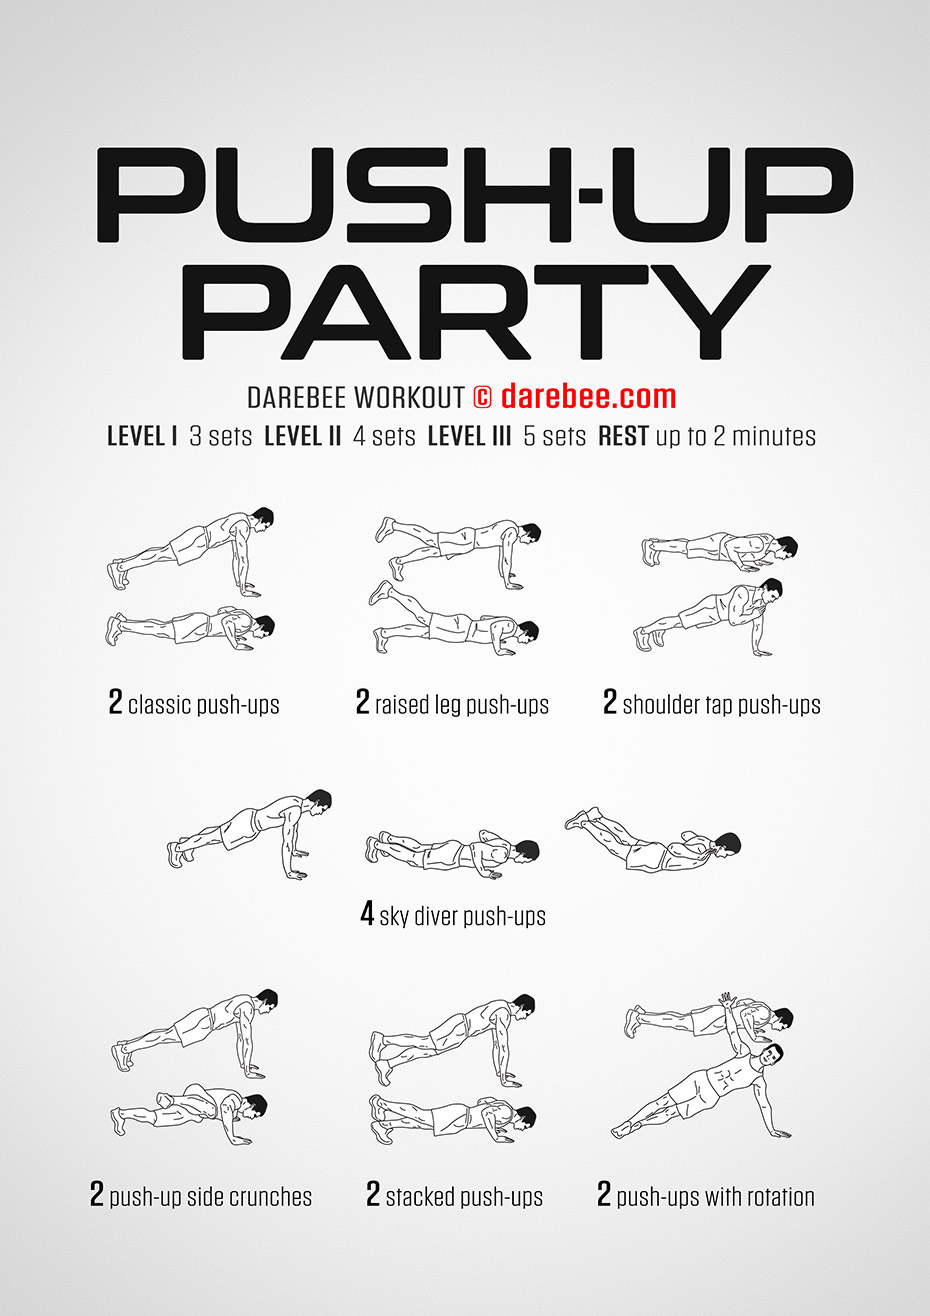 Push-Up Party Workout